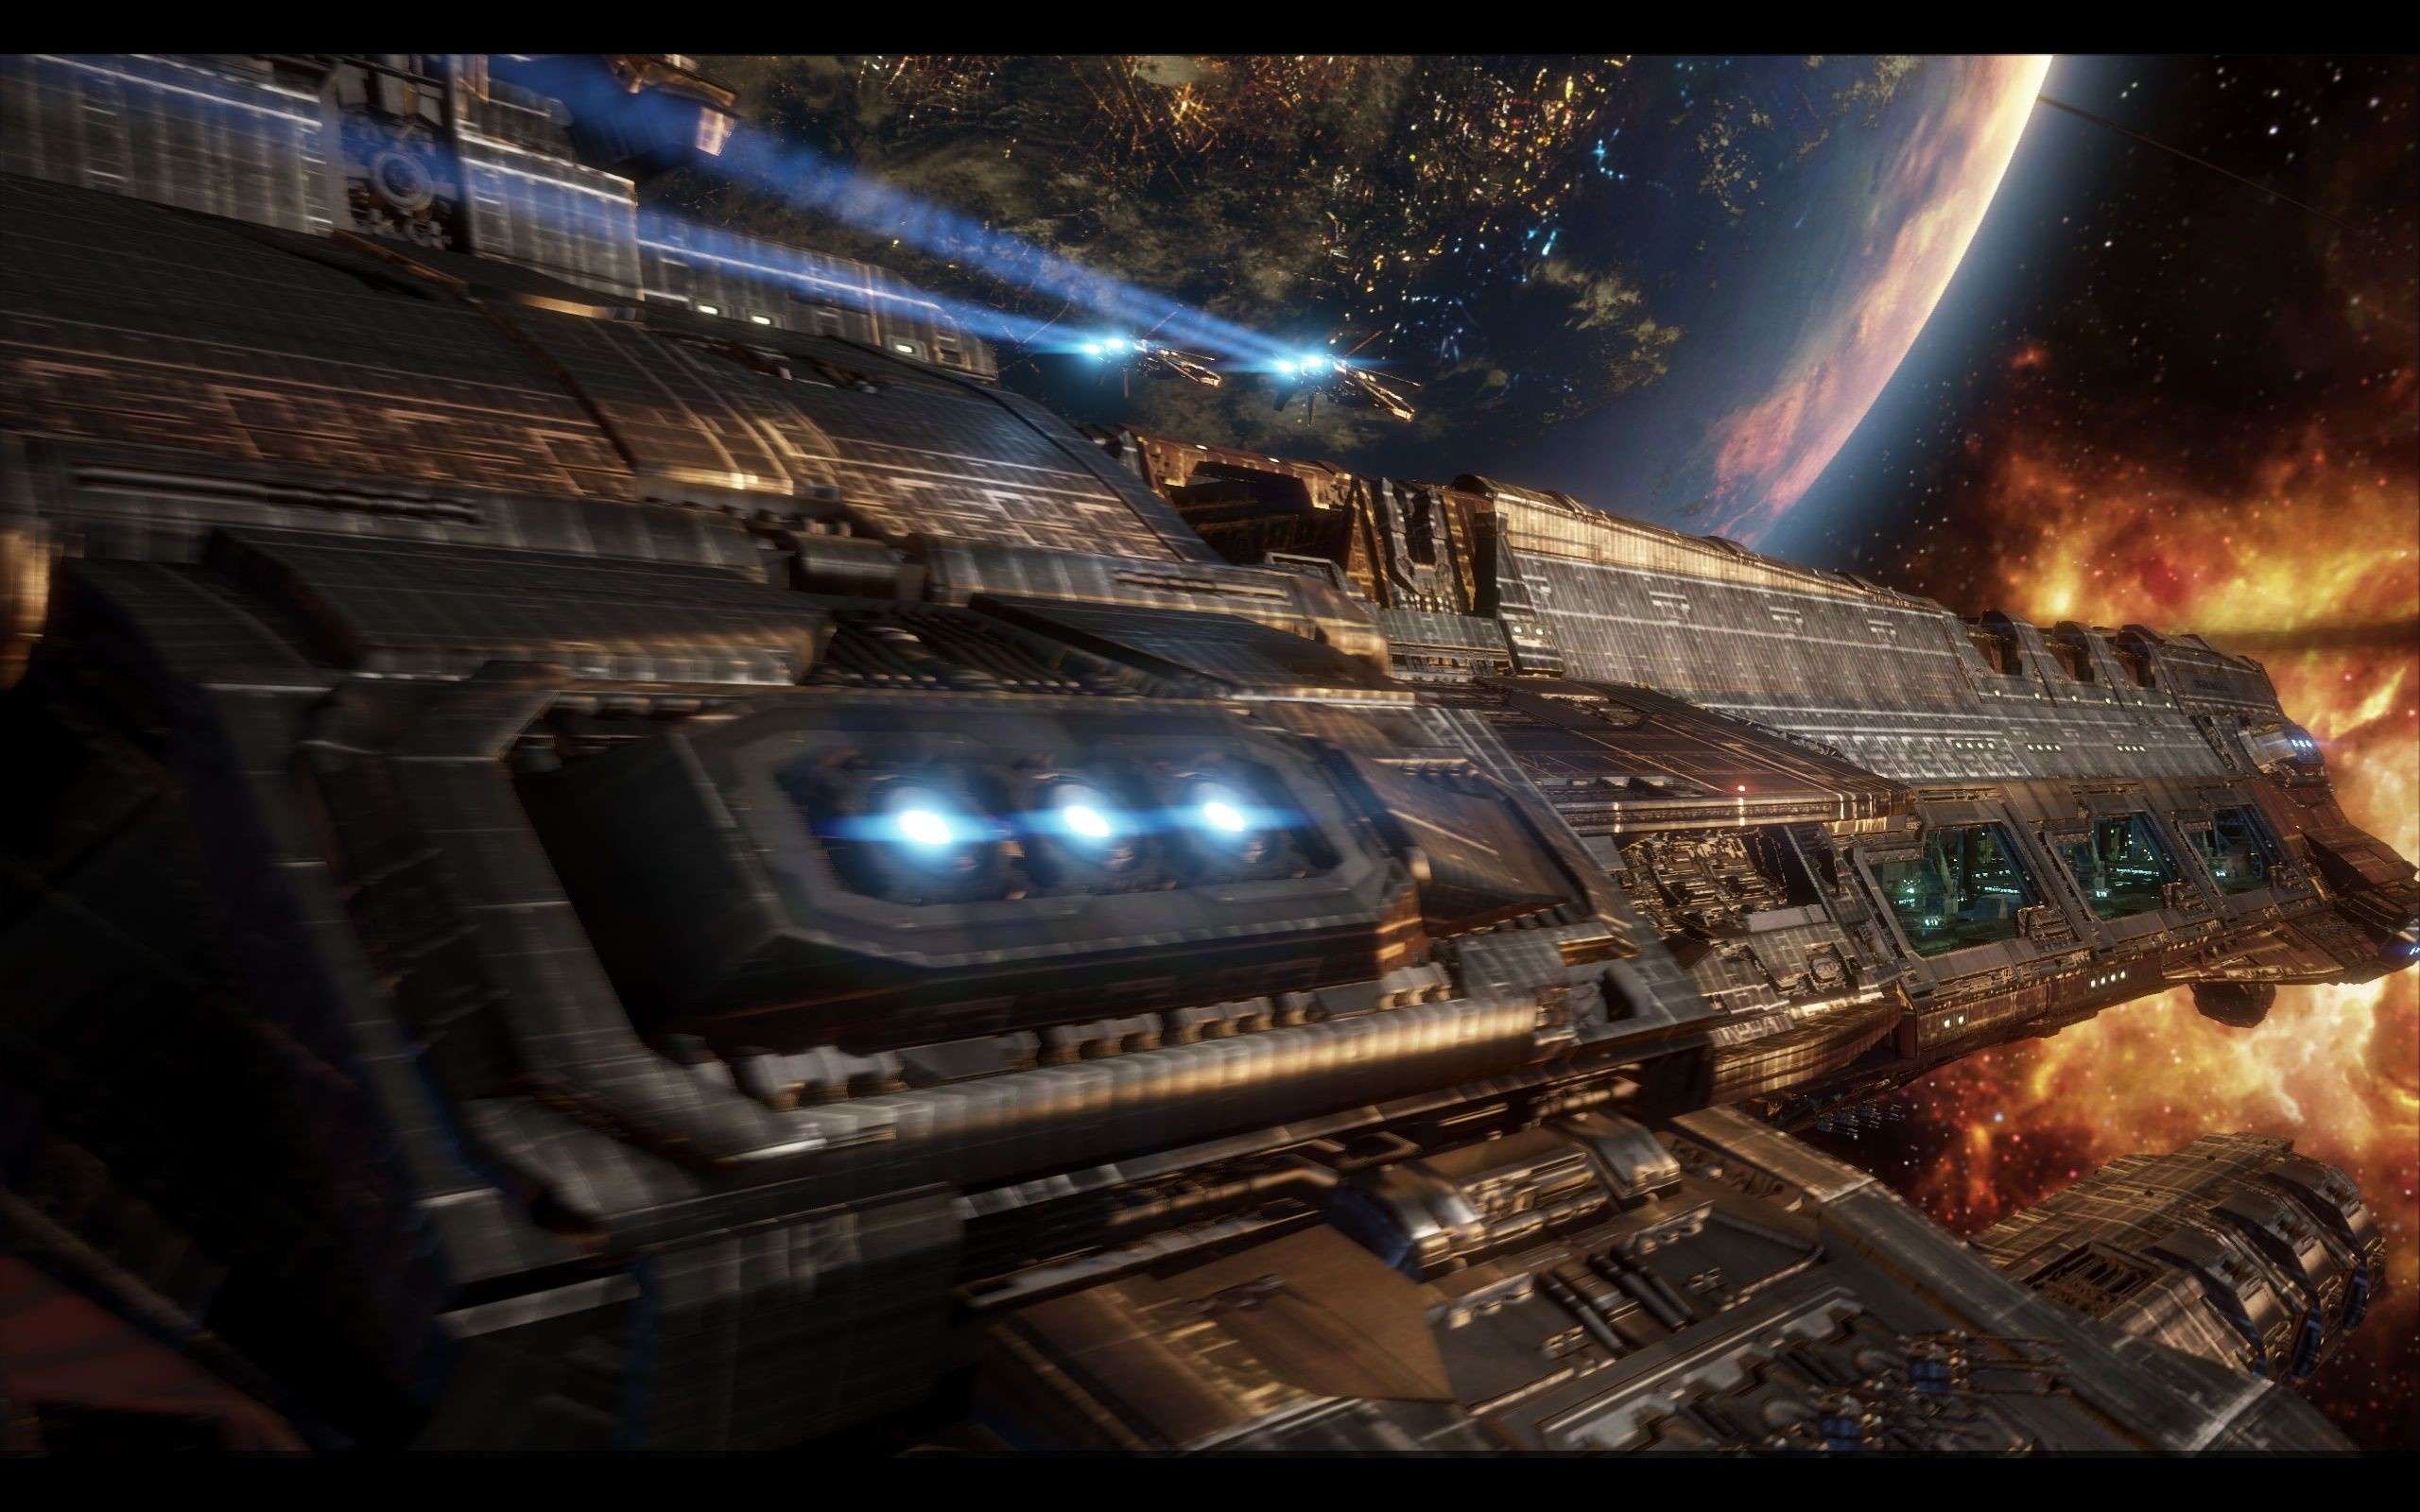 Res: 2560x1600, Sci Fi Battle Wallpapers Phone Fantasy Game Wallpaper